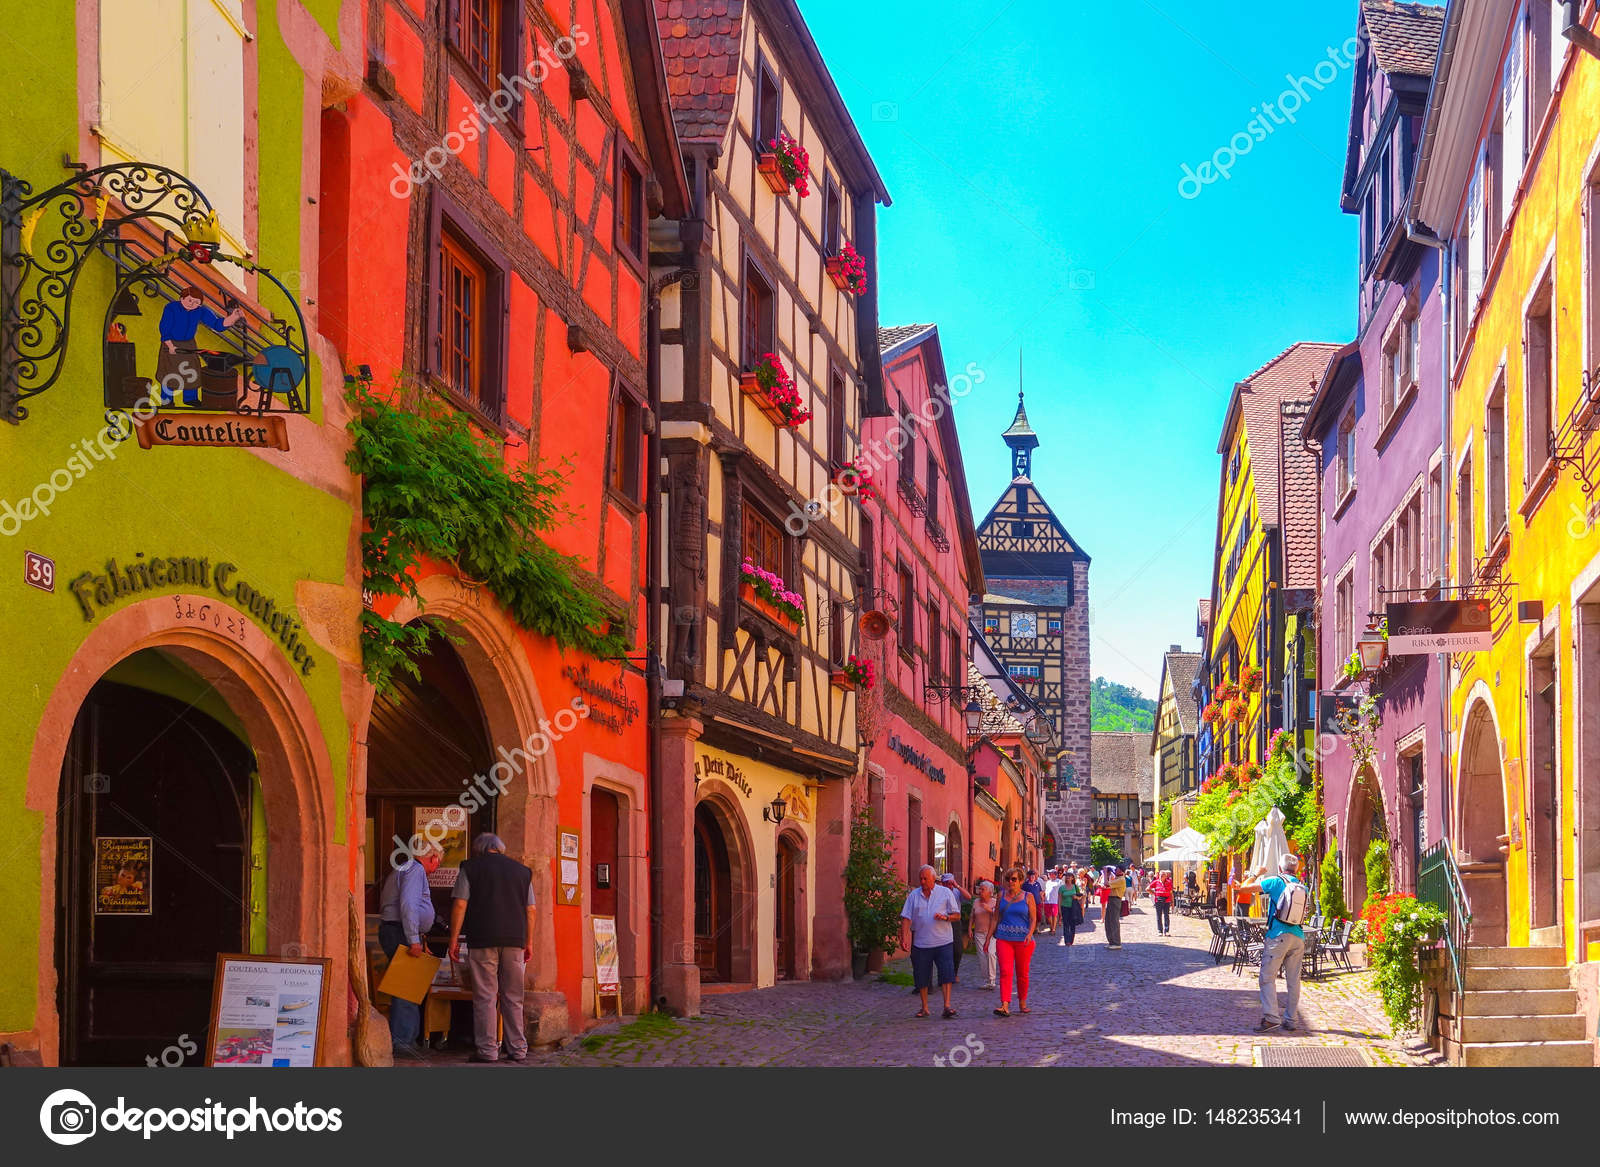 Colmar francia junio 23 2016 los turistas est n Colmar beauty and the beast